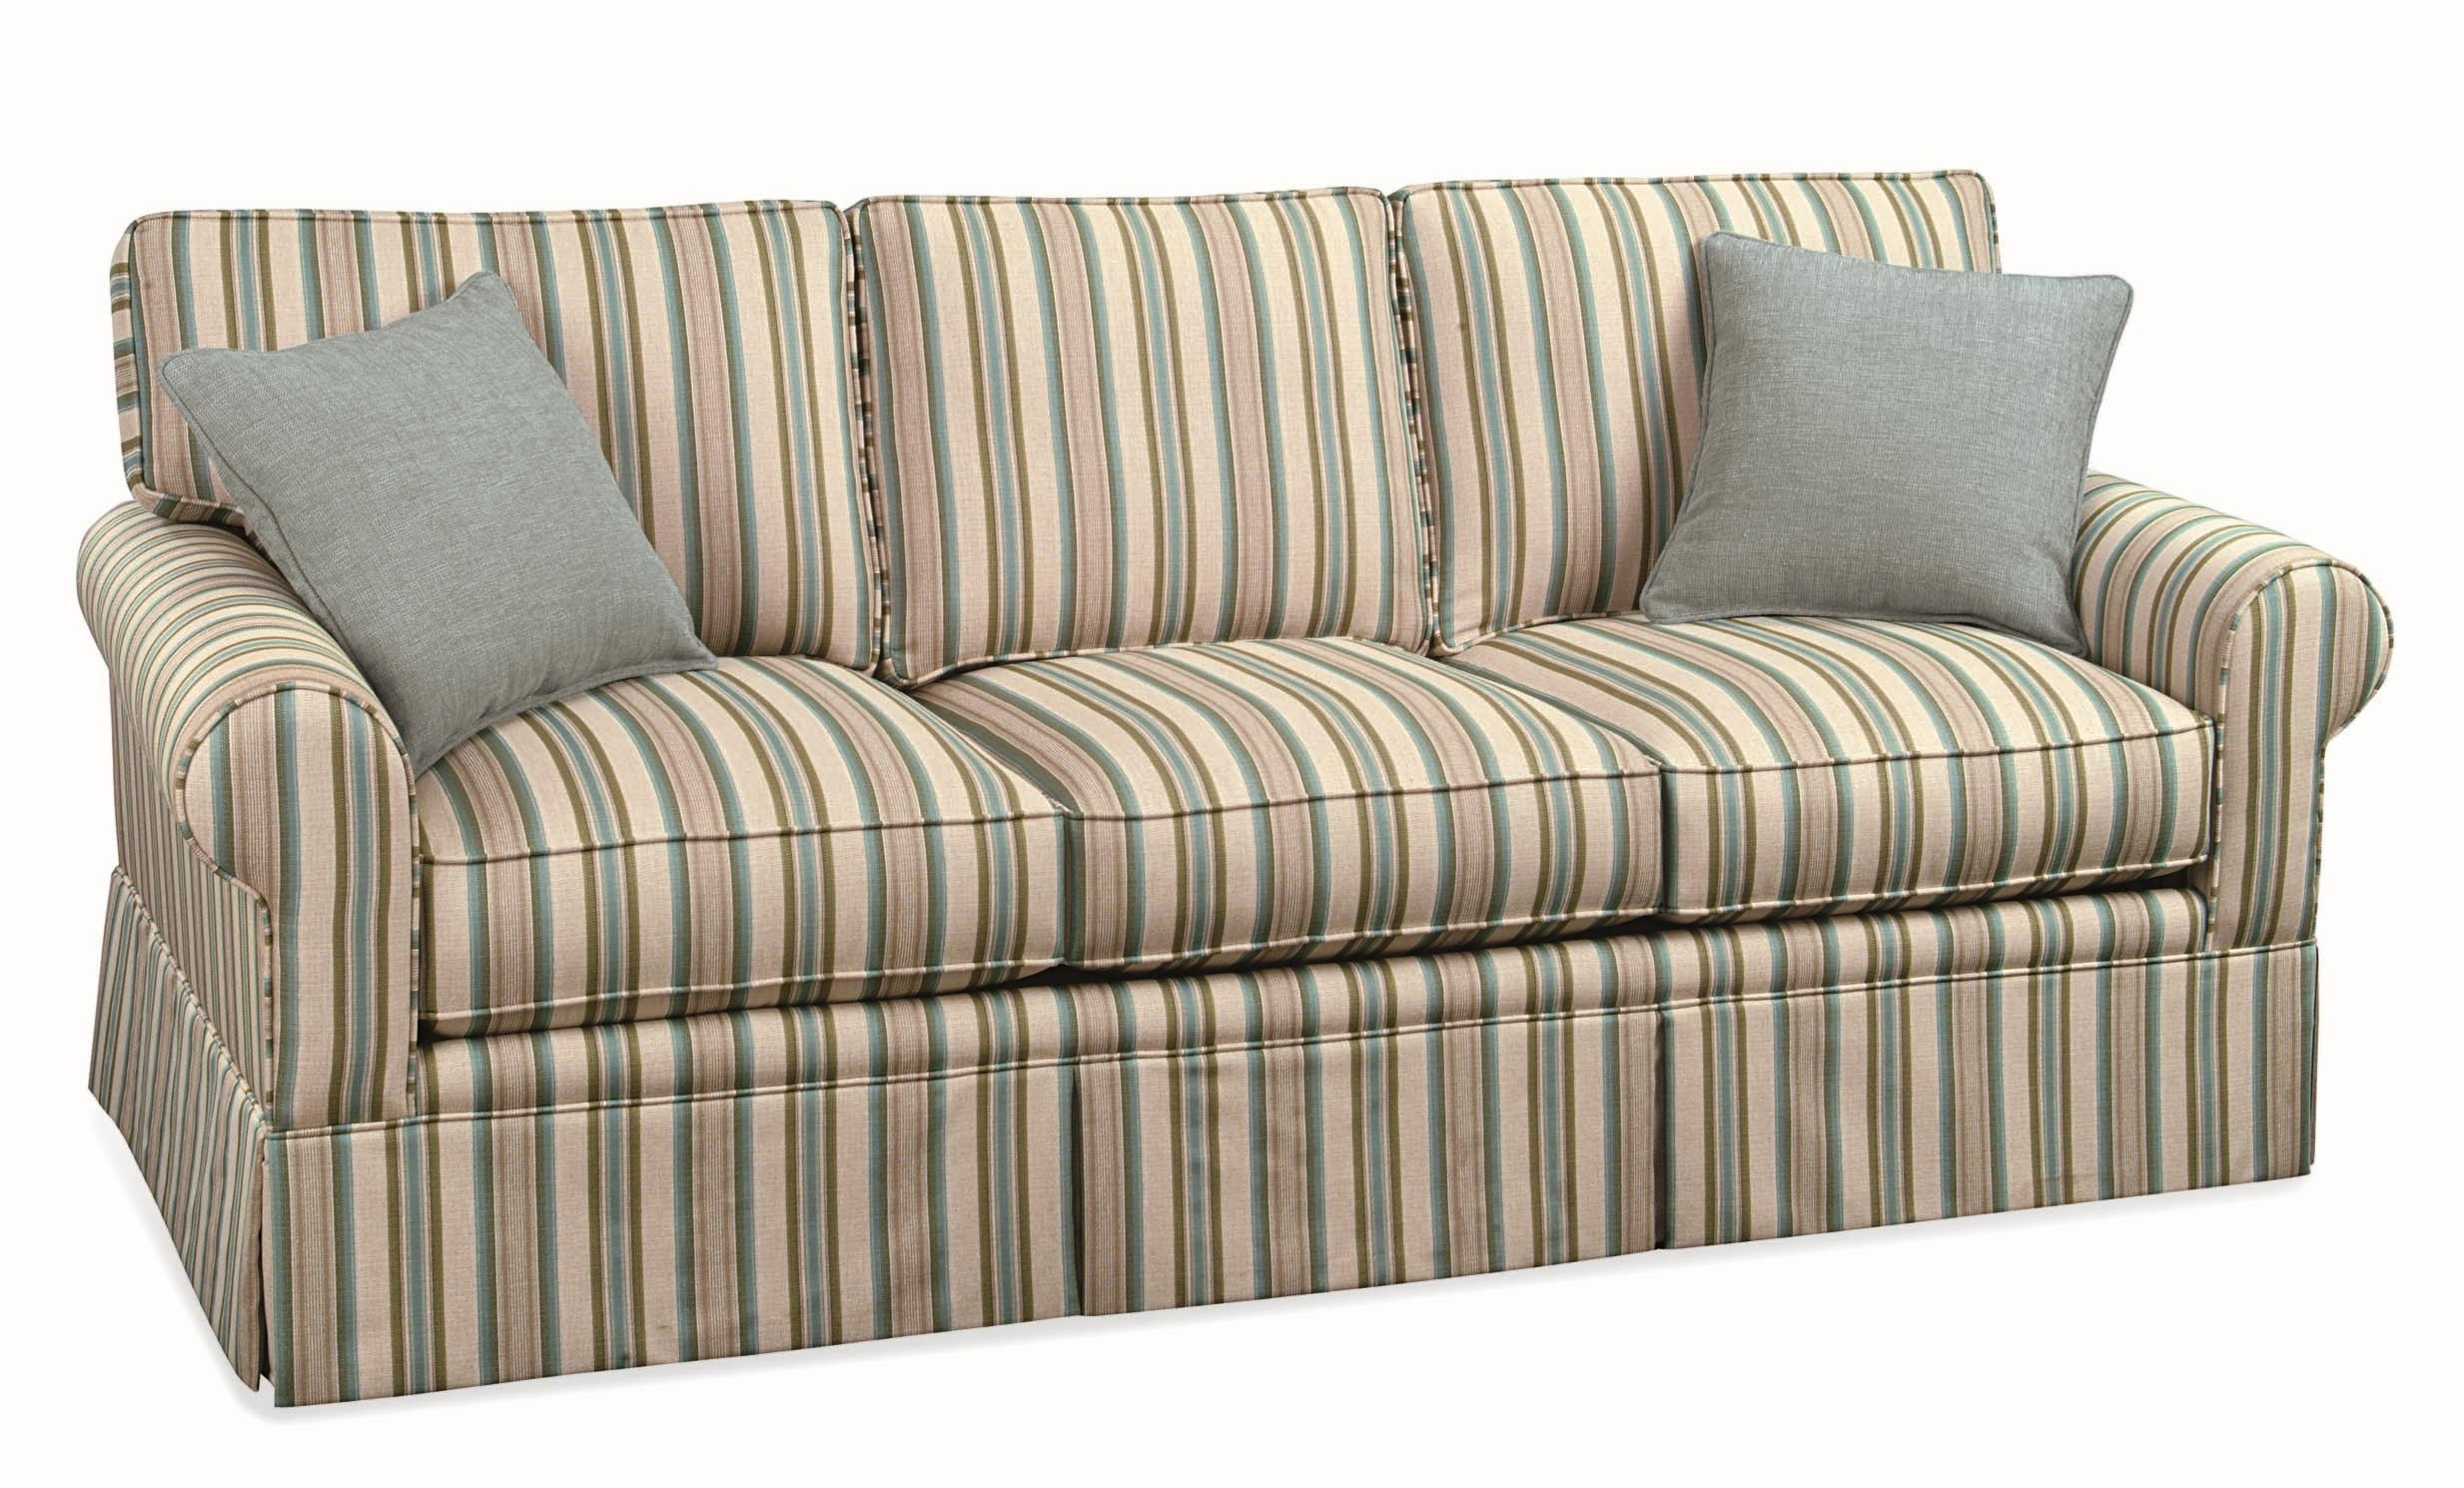 Braxton Culler Sofas & Accent Sofas Store – Dealer Locator Inside Braxton Culler Sofas (Image 13 of 20)